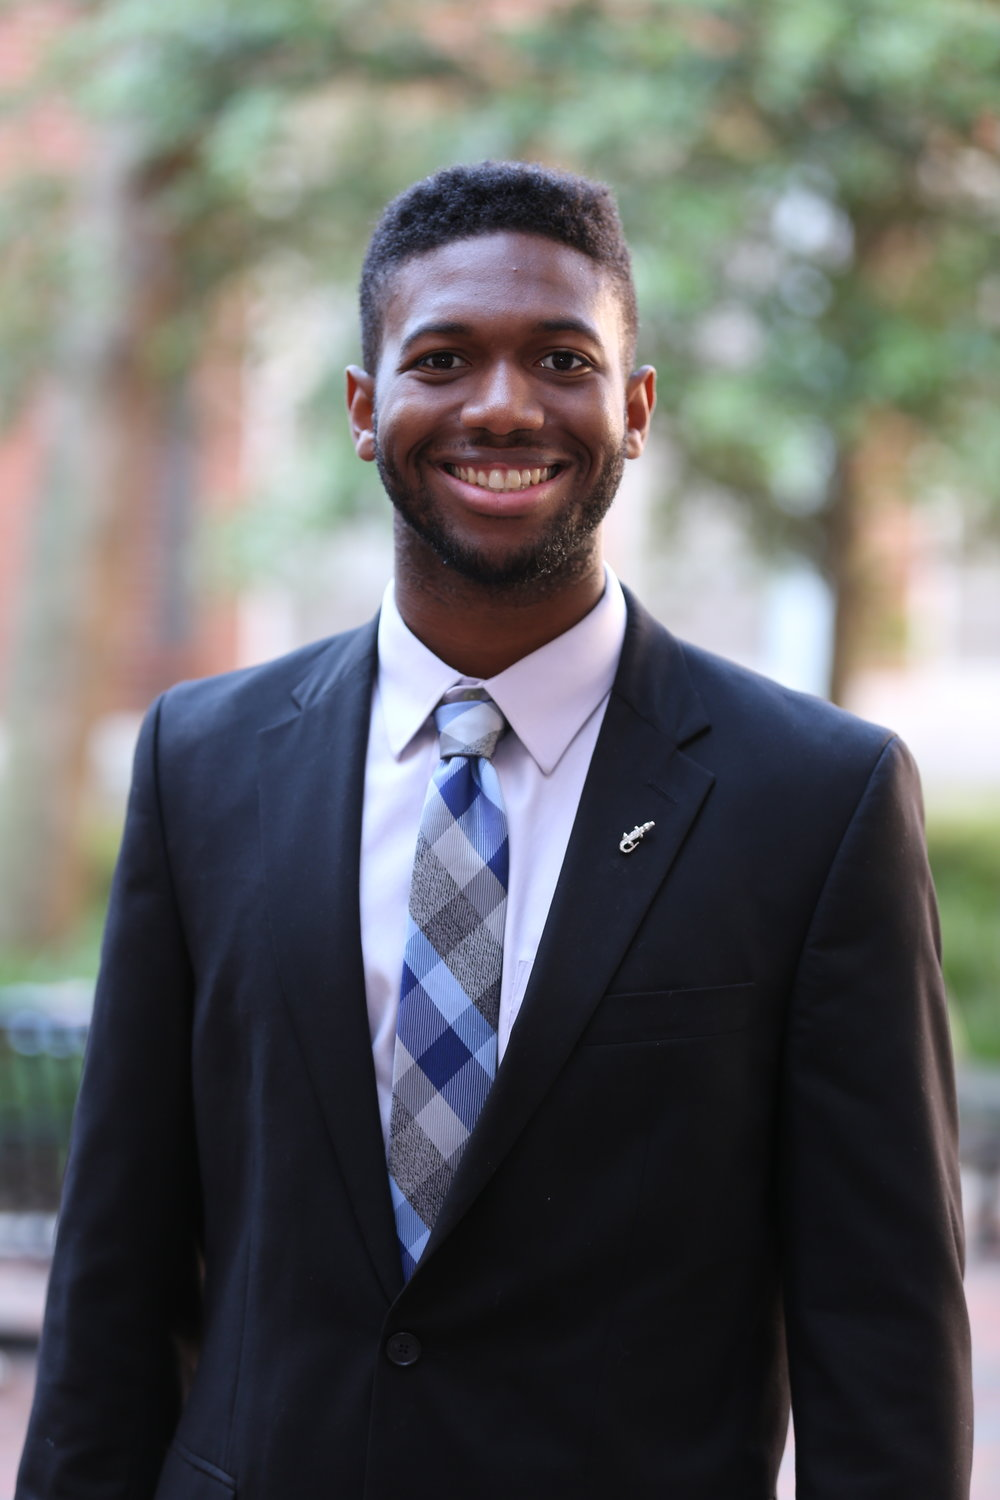 Major(s) : Information Systems   Minor(s) : N/A   Involvement : Student Assistant, Resident Assistant, Alpha Kappa Psi, MLT, Aces in Motion   Interests/ Hobbies : Outdoor activities, running, yoga,   Fun Fact : I've sky diving before